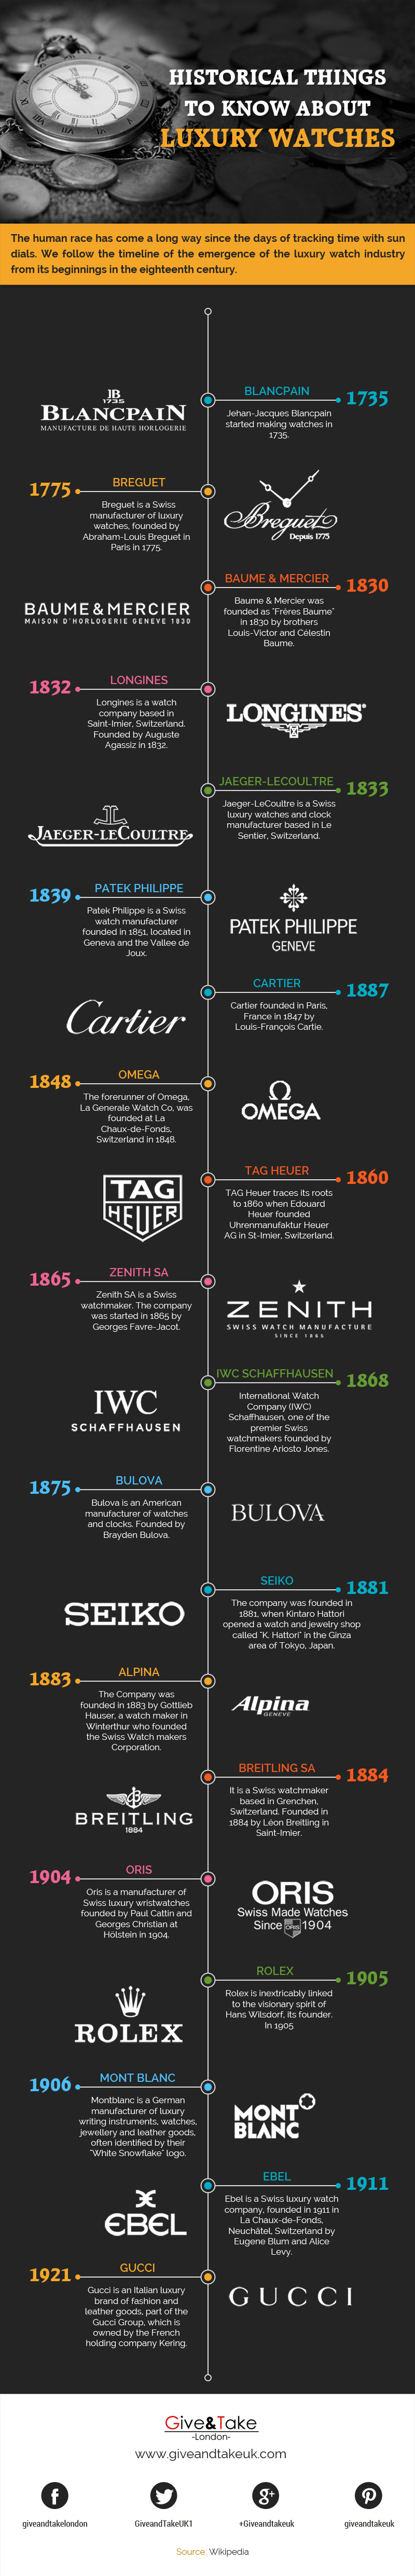 Historical Things To Know About Luxury Watches [Infographic]